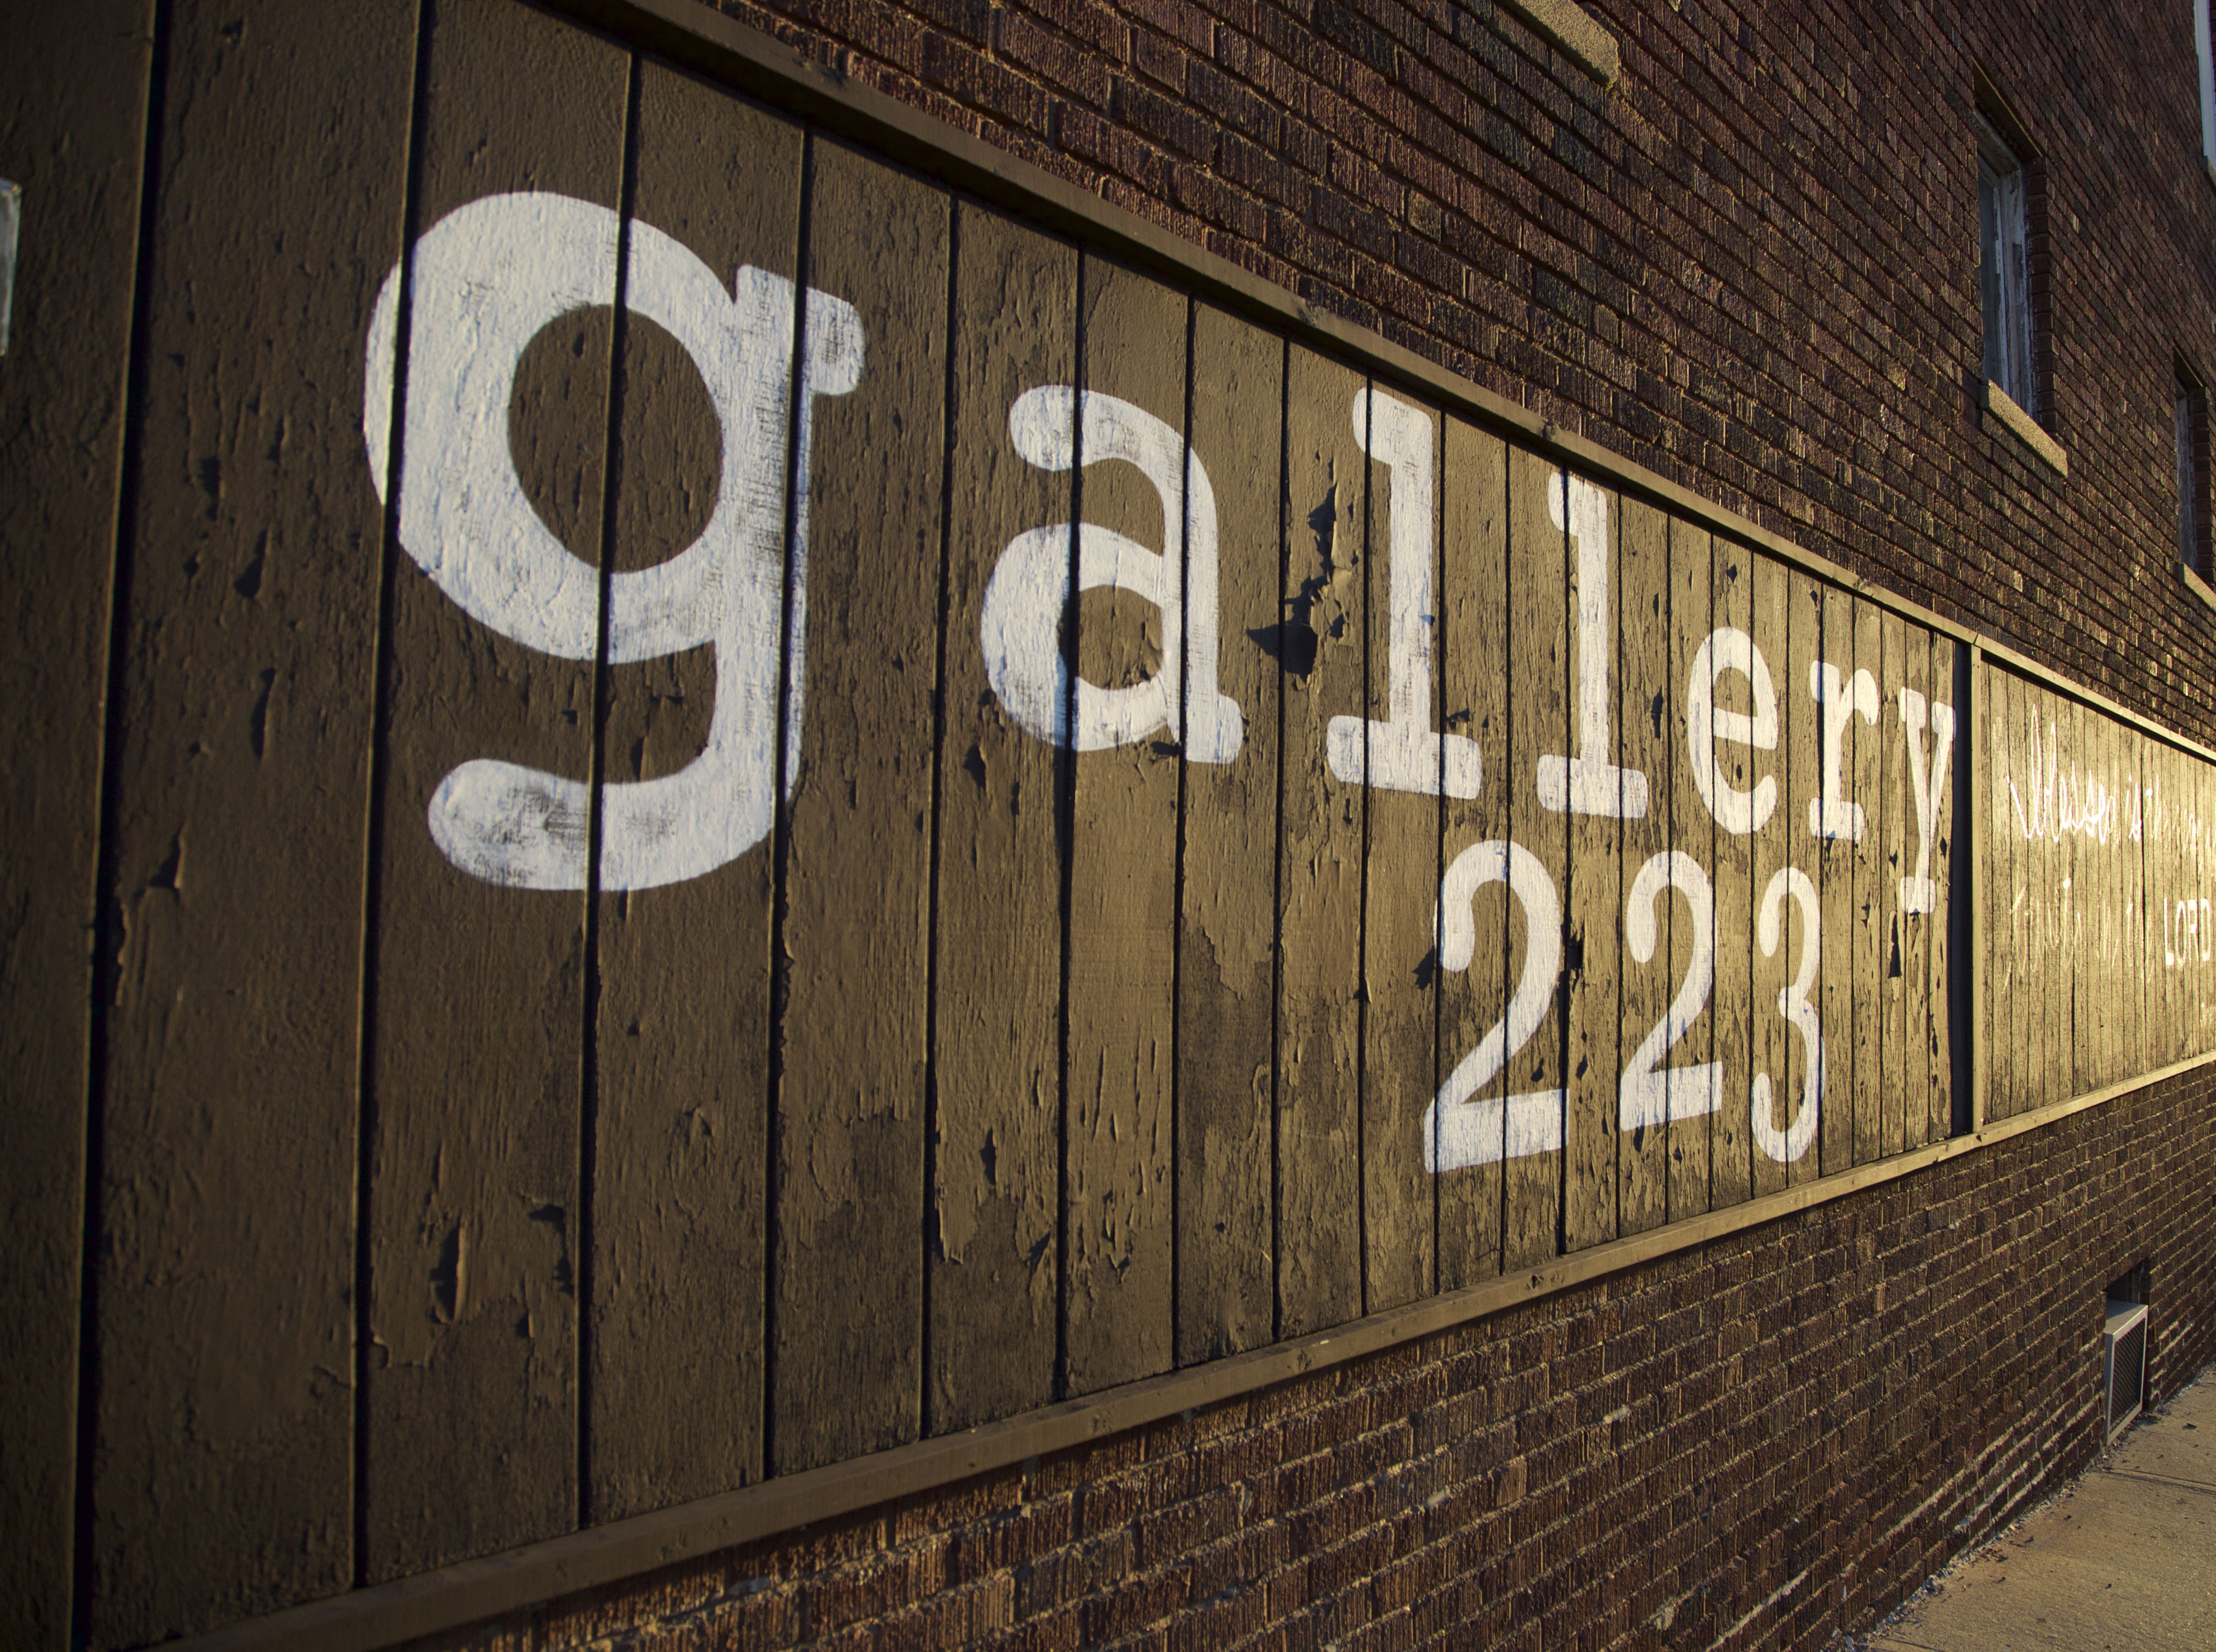 Gallery 223 in Mount Vernon Illinois